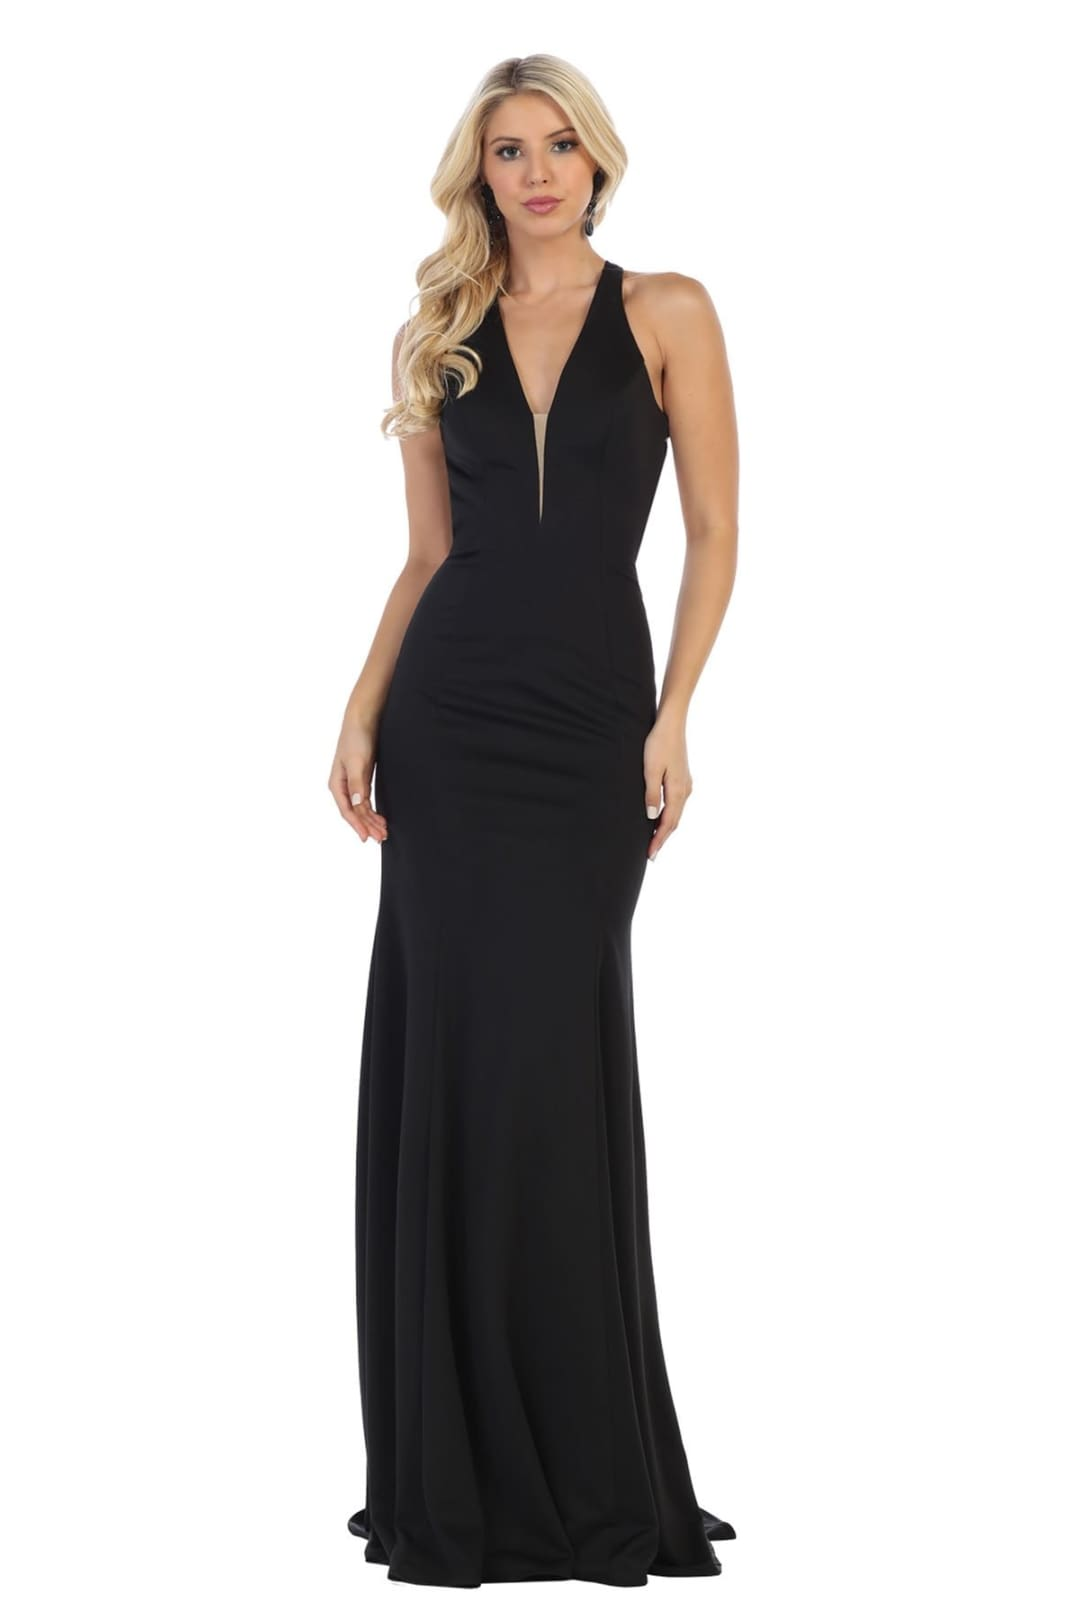 V-Neckline Prom Dress - Black / 2